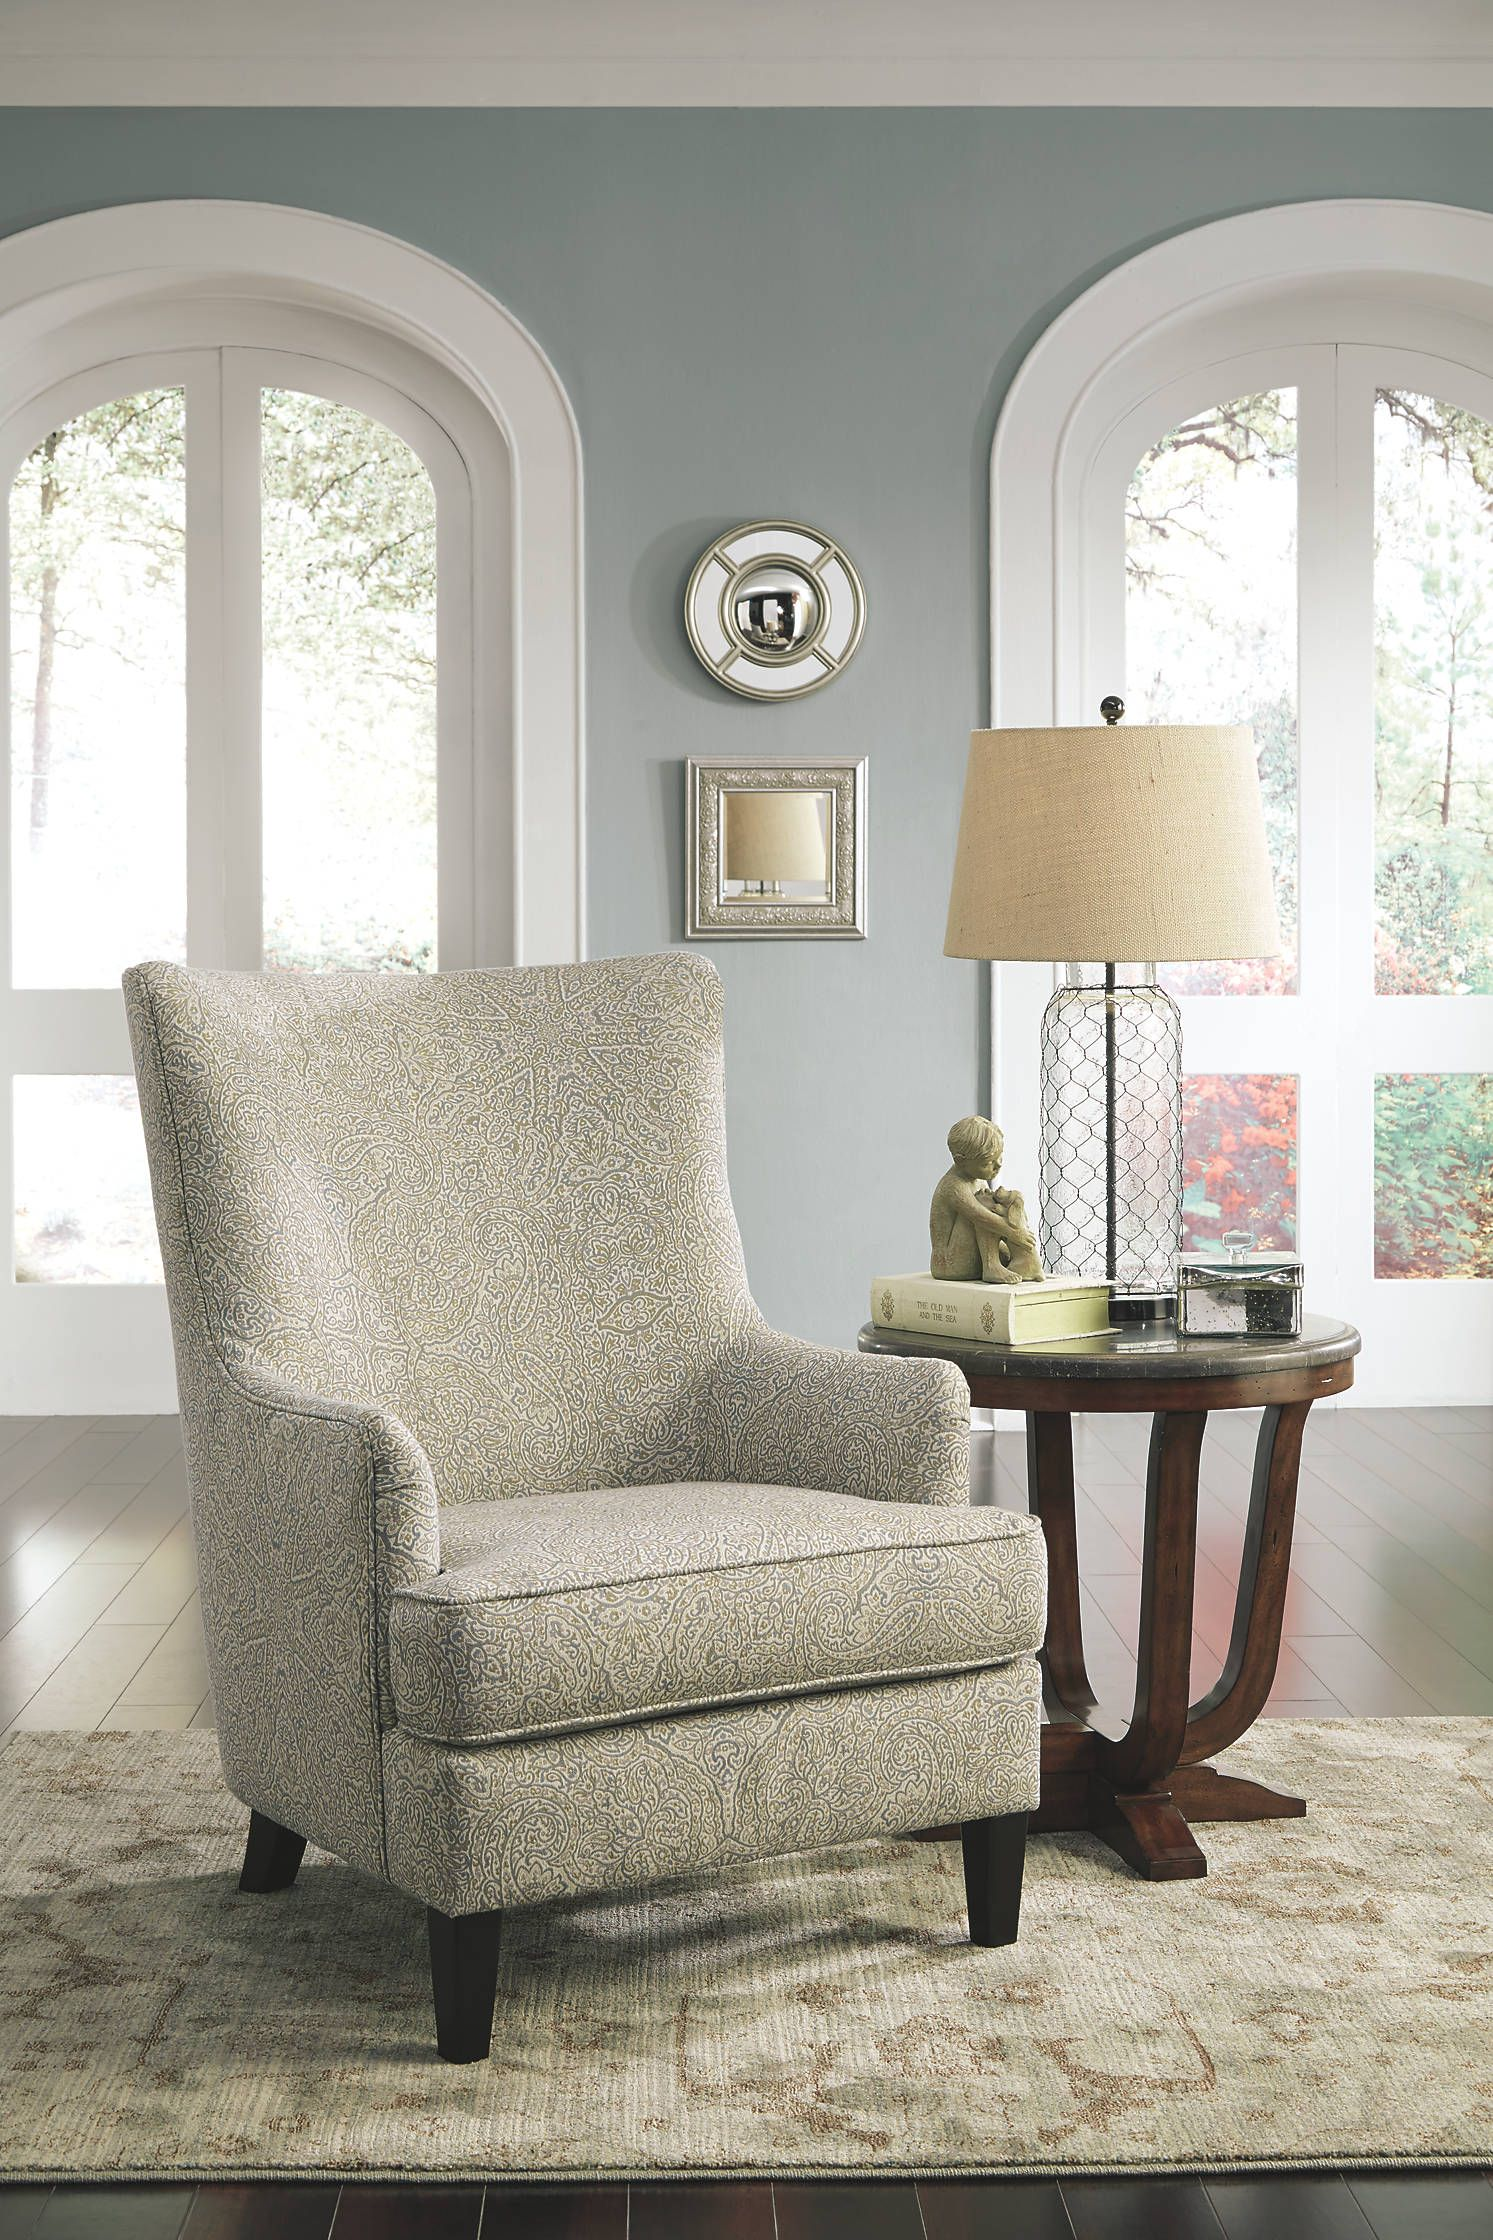 Etonnant Traditional Scalloped Wingback Chair In Brocade Upholstery